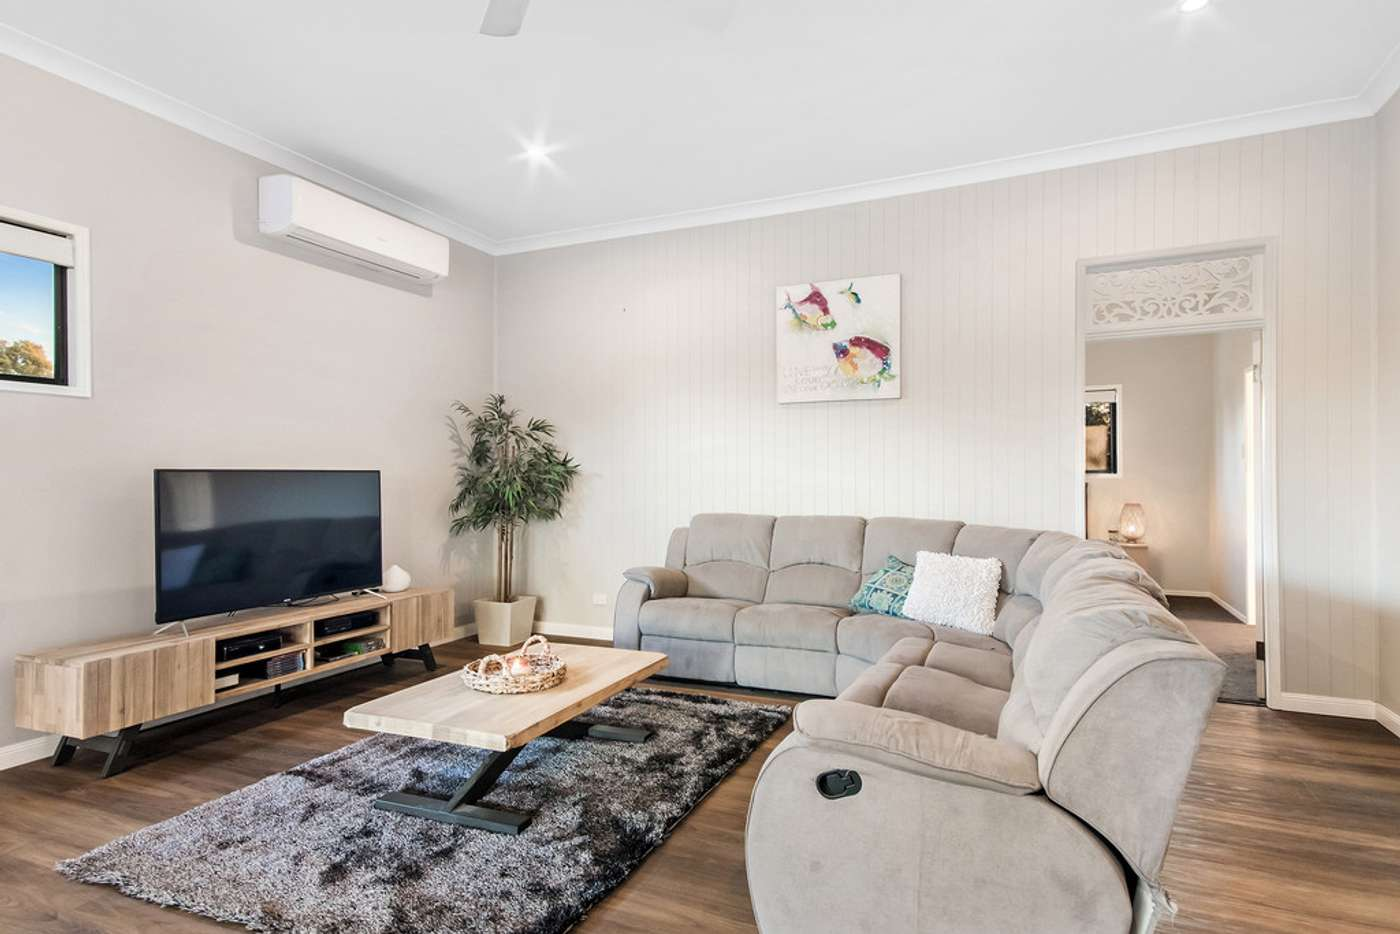 Seventh view of Homely house listing, 15 Blackwood Street, East Ipswich QLD 4305